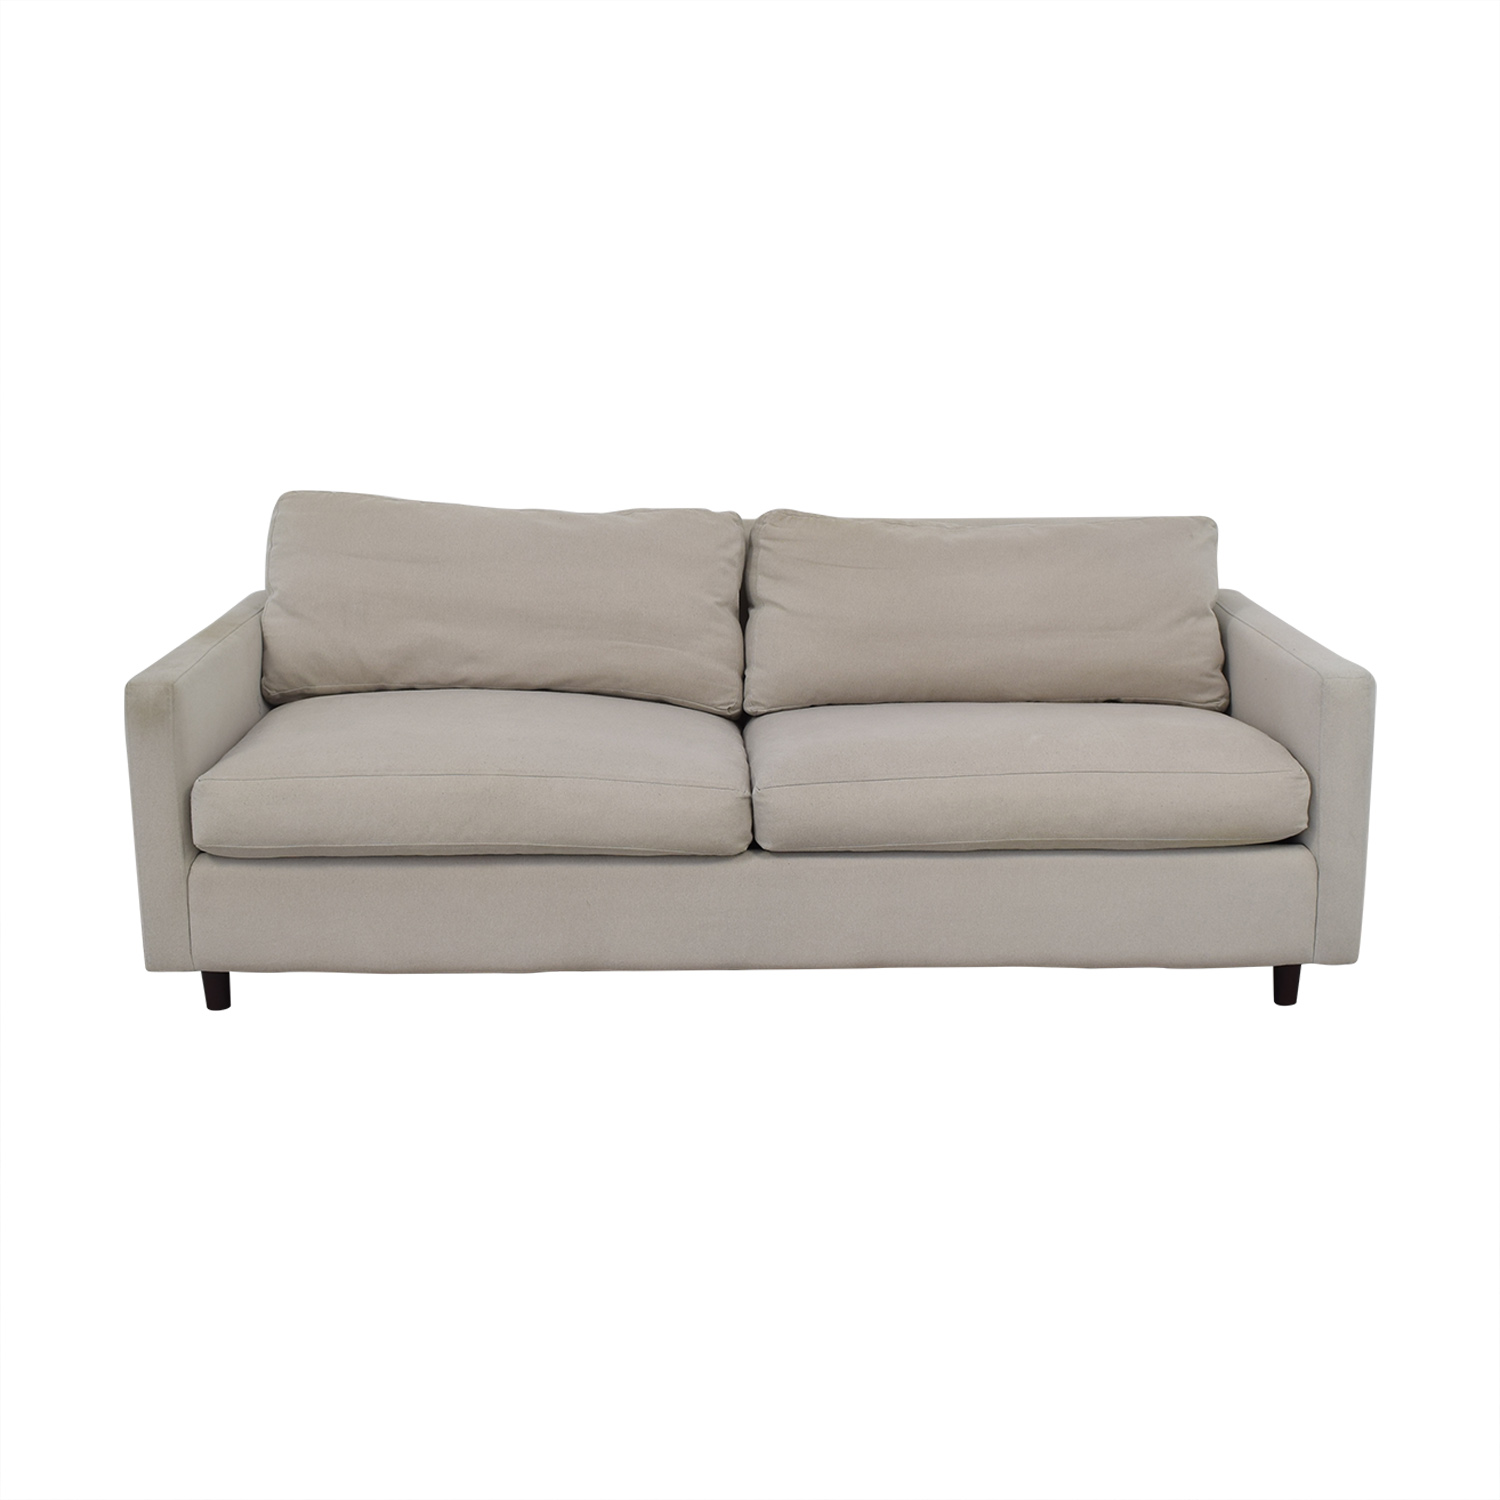 Room & Board Room & Board Easton Sofa light grey